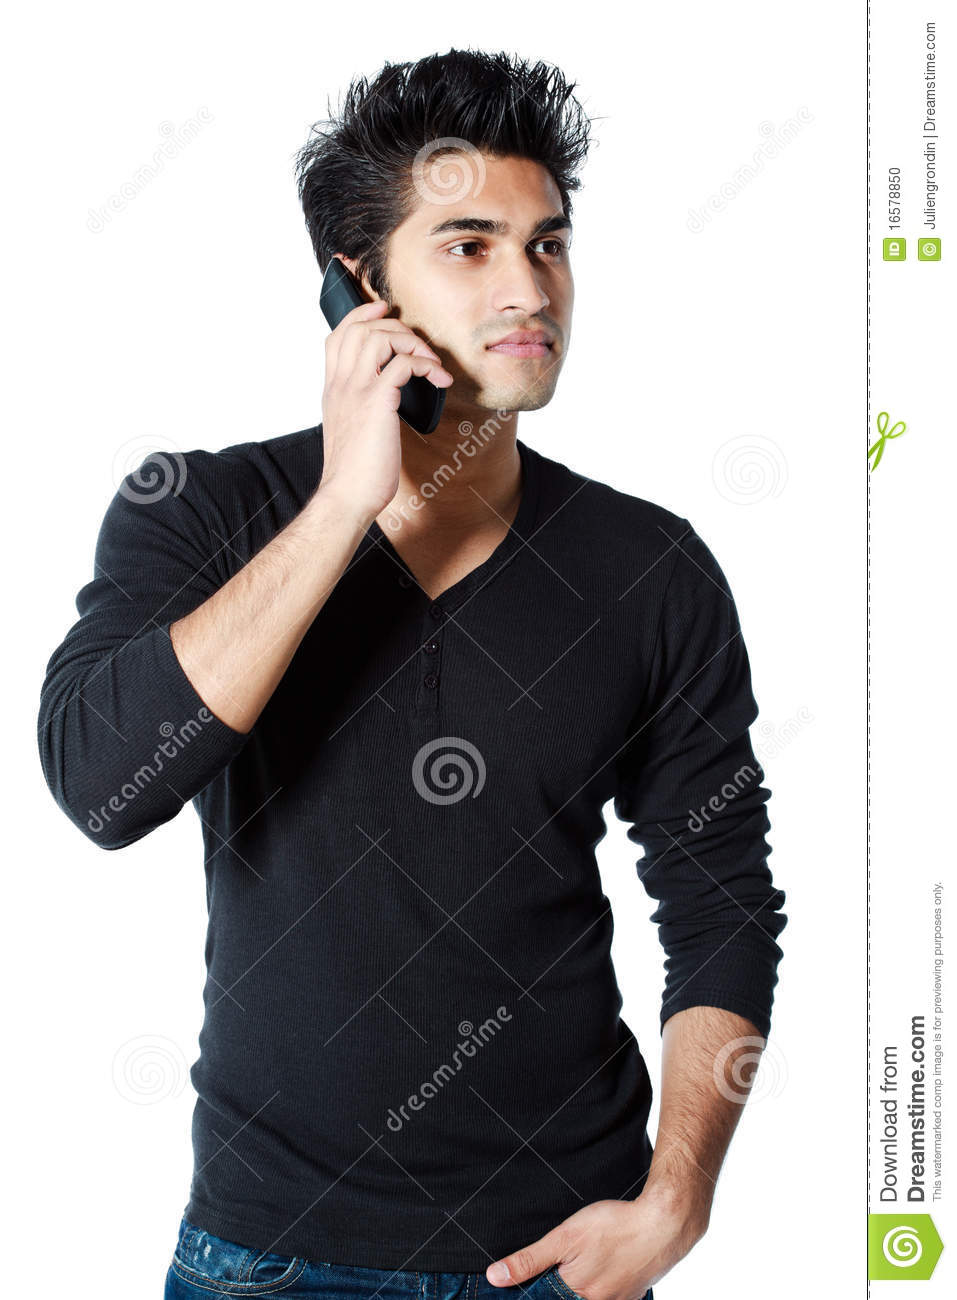 Man On Cell Phone : Man holding cell phone stock photo image of background